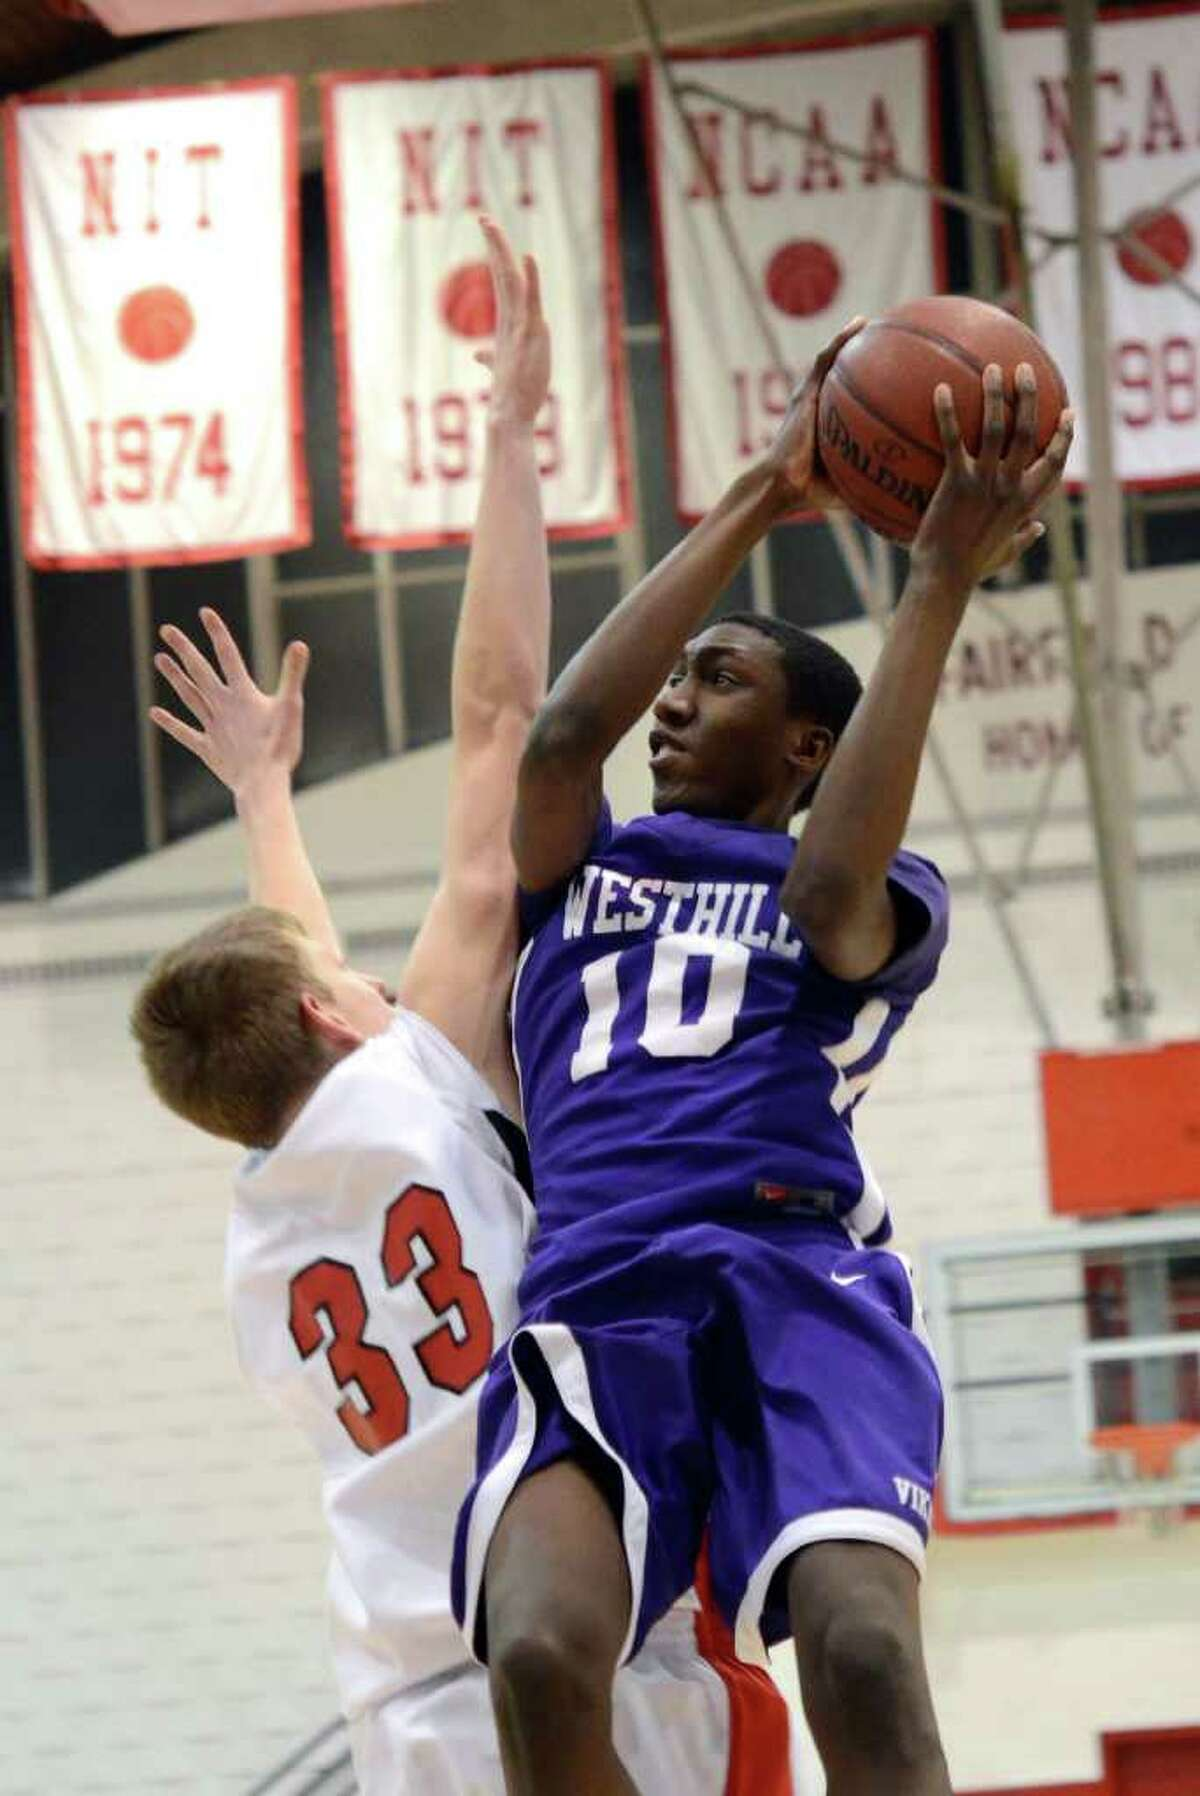 Westhill's Mark Edwin (10) goes up for a shot as Fairfield Prep's Tim Butala (33) defends during the second round of the Class LL boys basketball state tournament at Fairfield University's Alumni Hall on Thursday, Mar. 8, 2012.